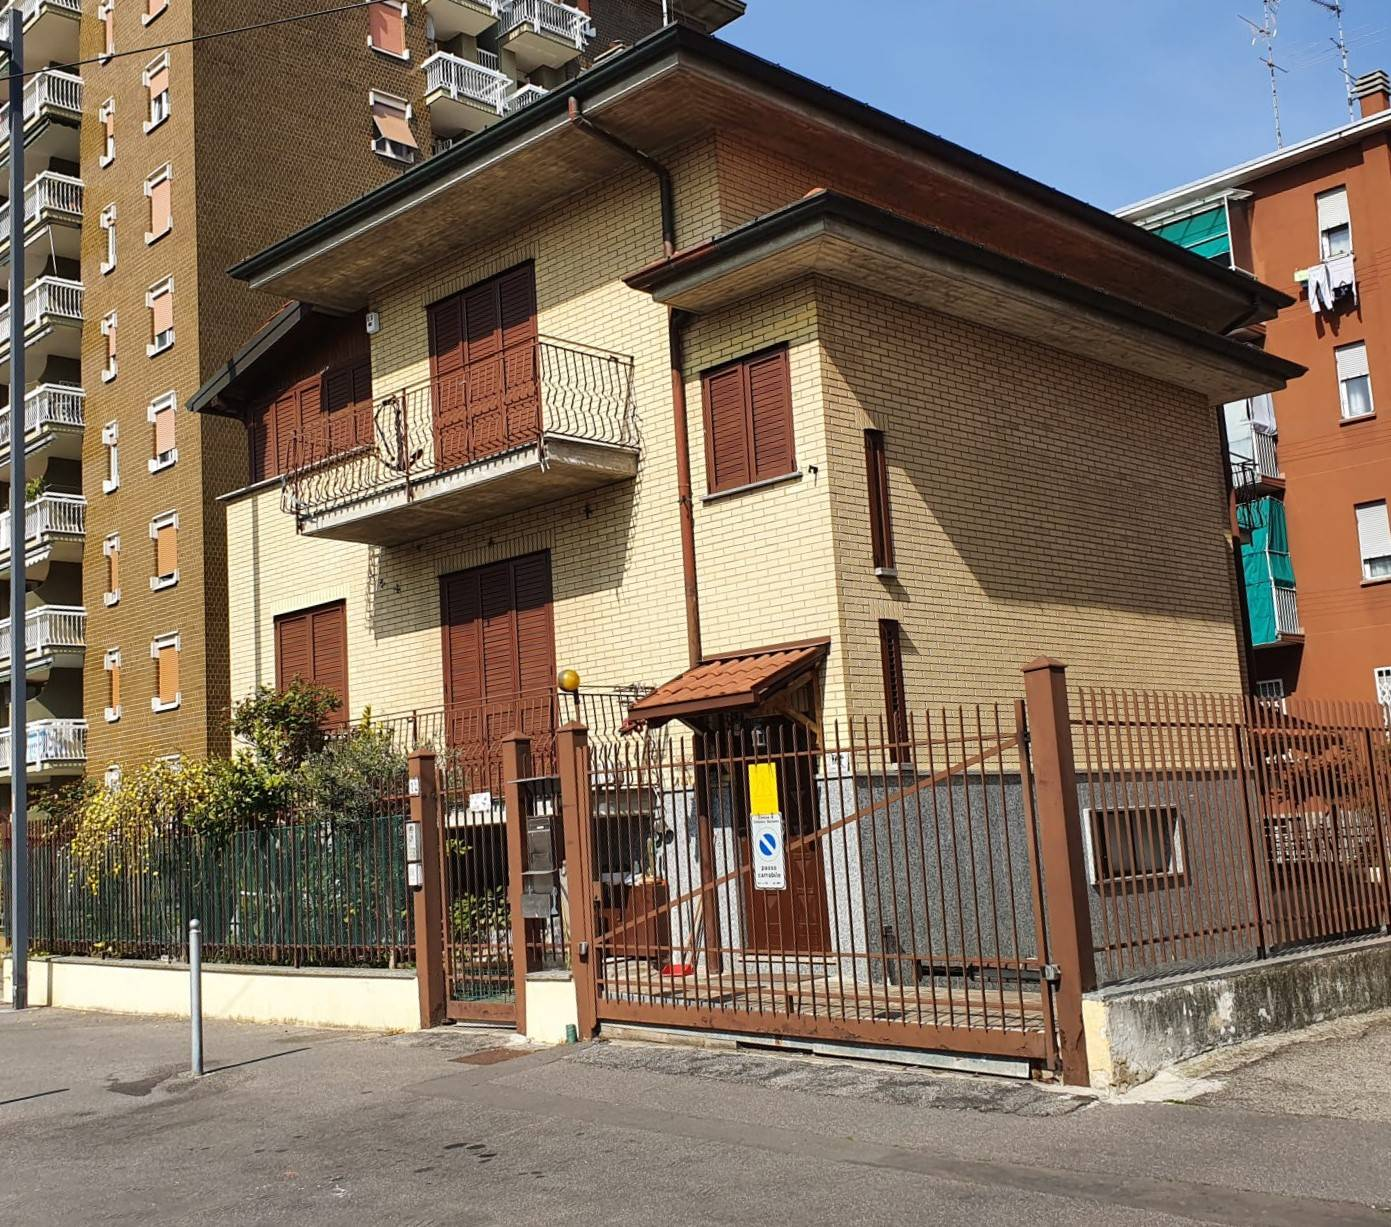 CINISELLO BALSAMO, Duplex villa for sale of 190 Sq. mt., Excellent Condition, Heating Individual heating system, Energetic class: G, Epi: 175 kwh/m2